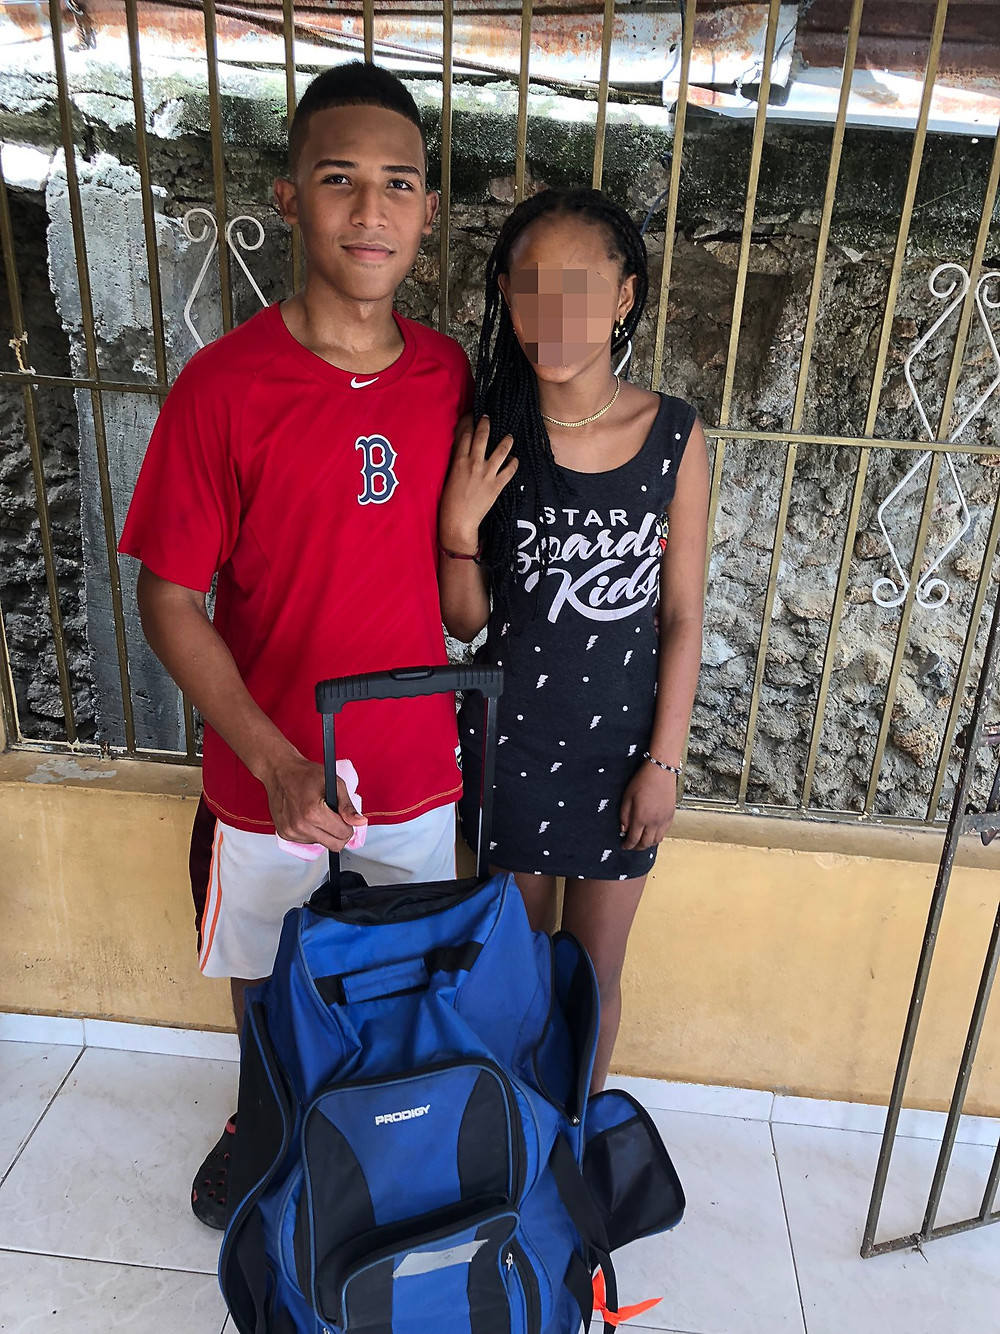 Reynaldo and *Sara shortly after her rescue